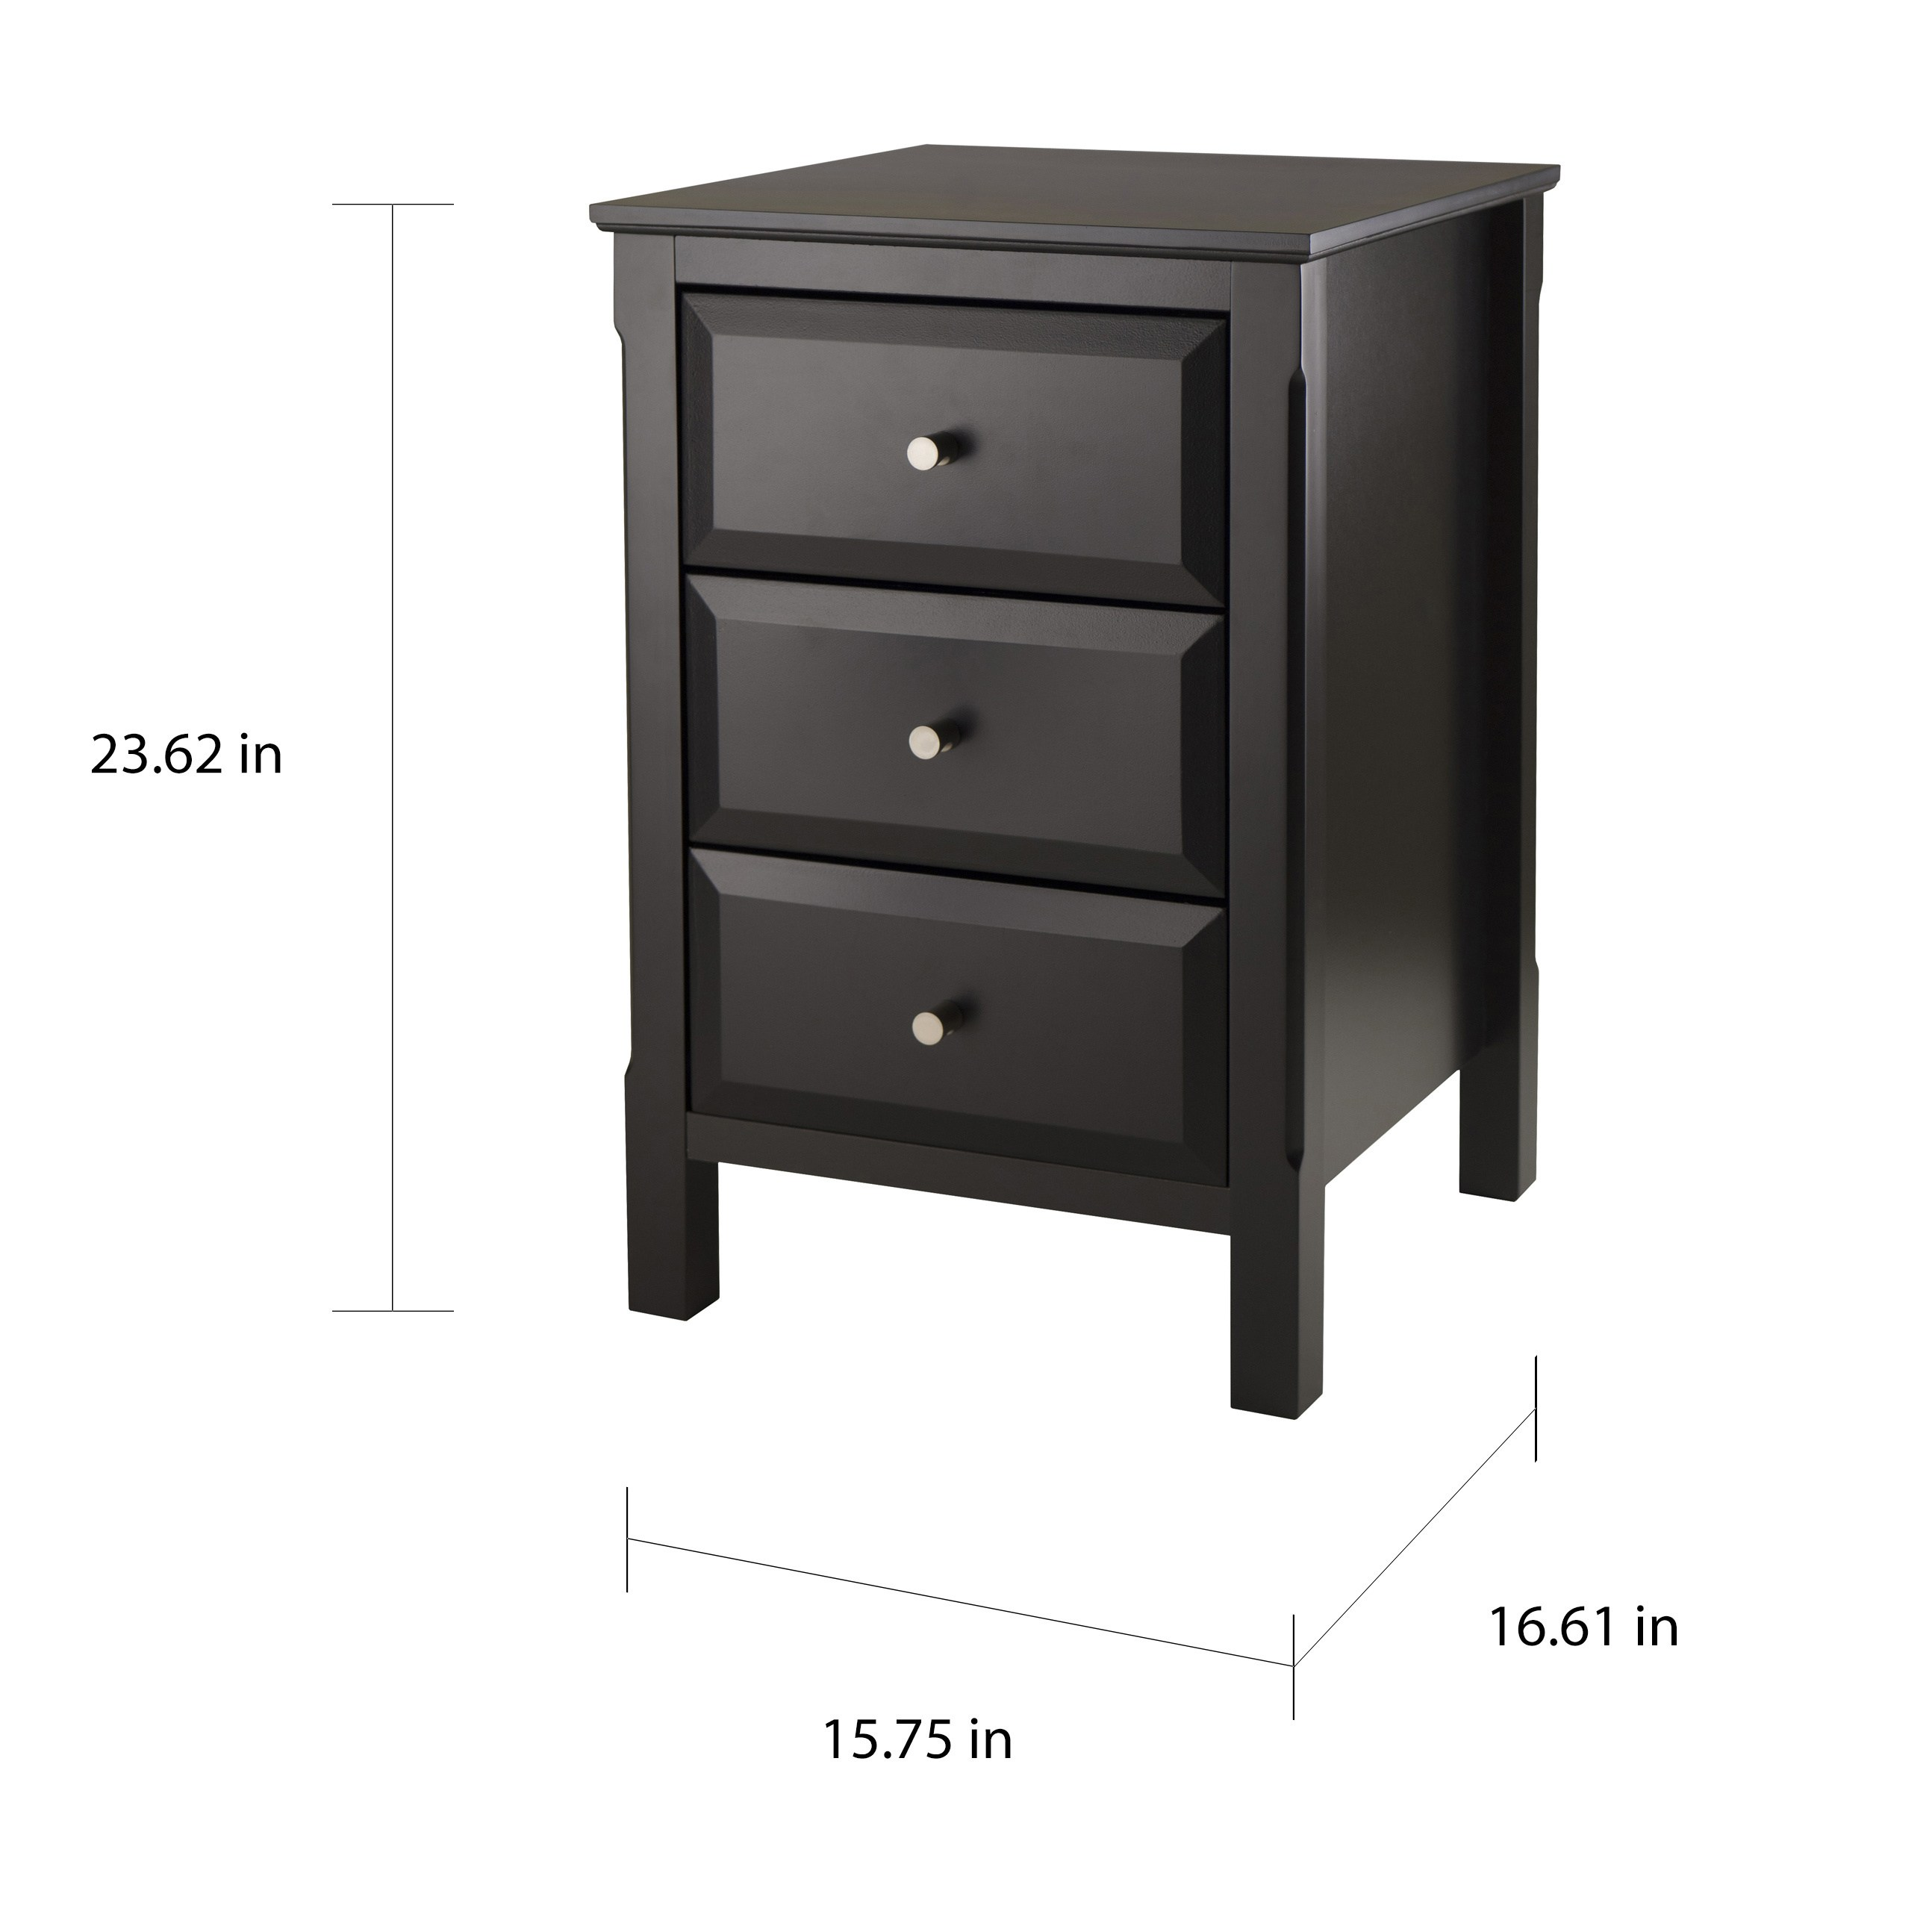 timmy black night stand and end table free shipping today accent white lamp garden dining side shades industrial couch memory foam rug bdi furniture patio chair covers rectangular